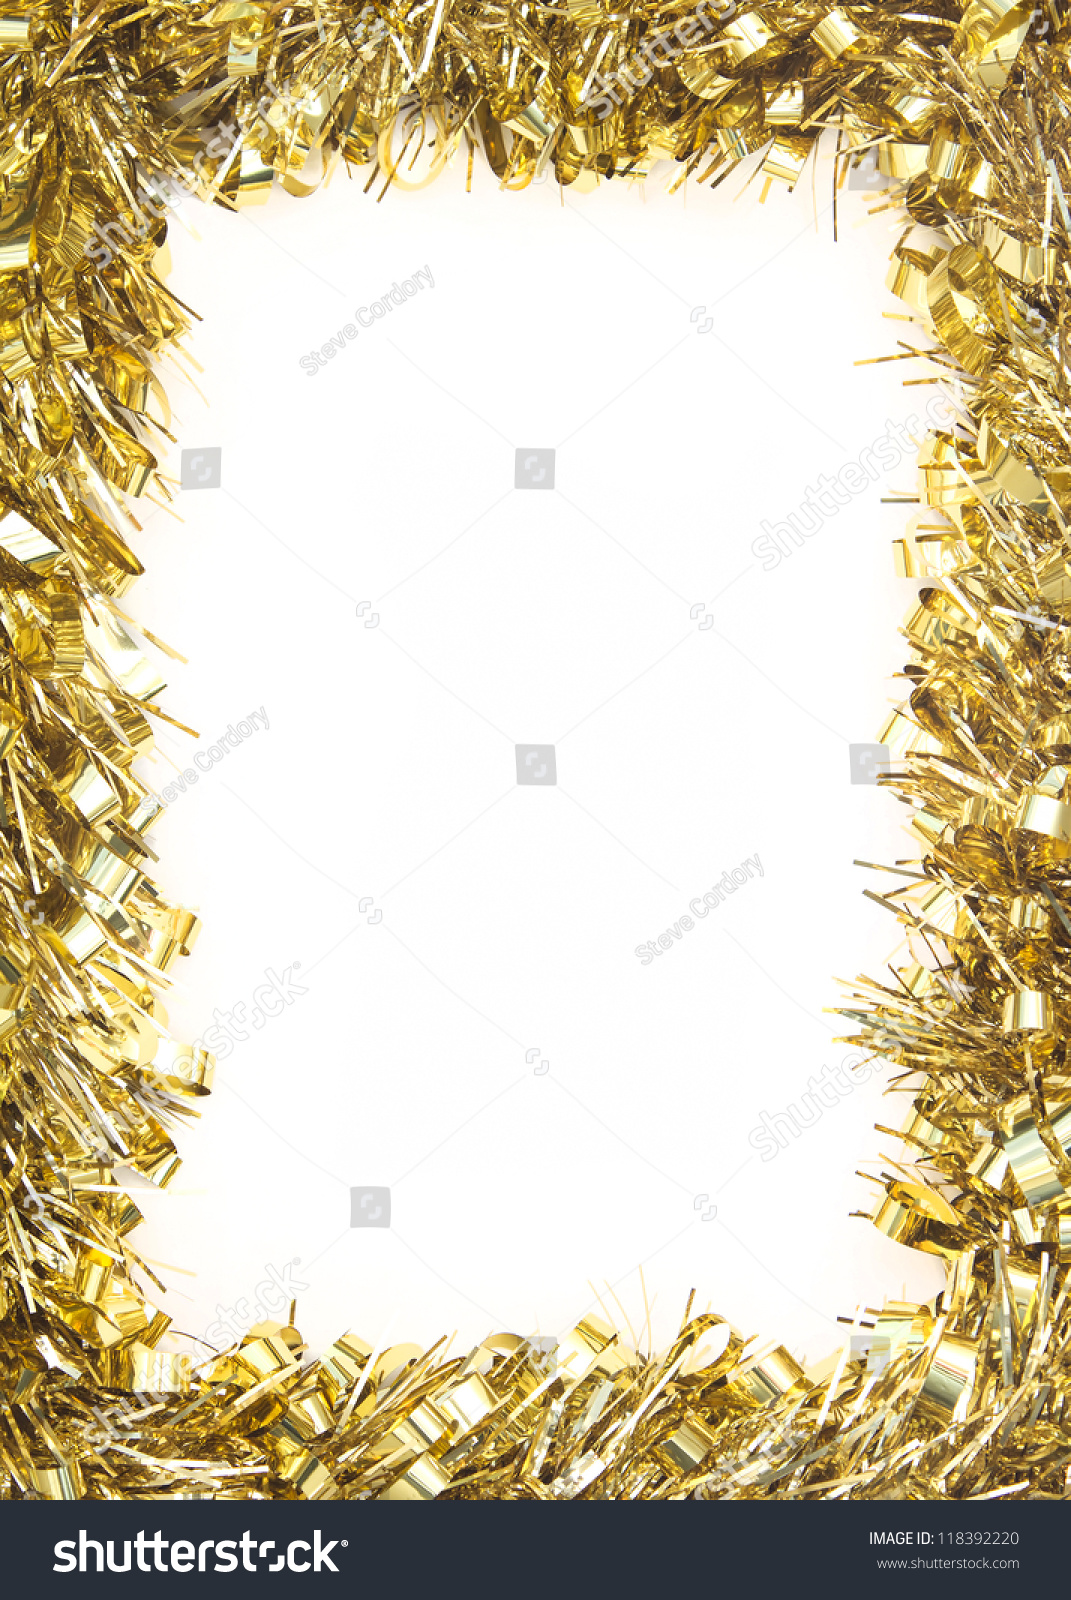 Best christmas background border with gold